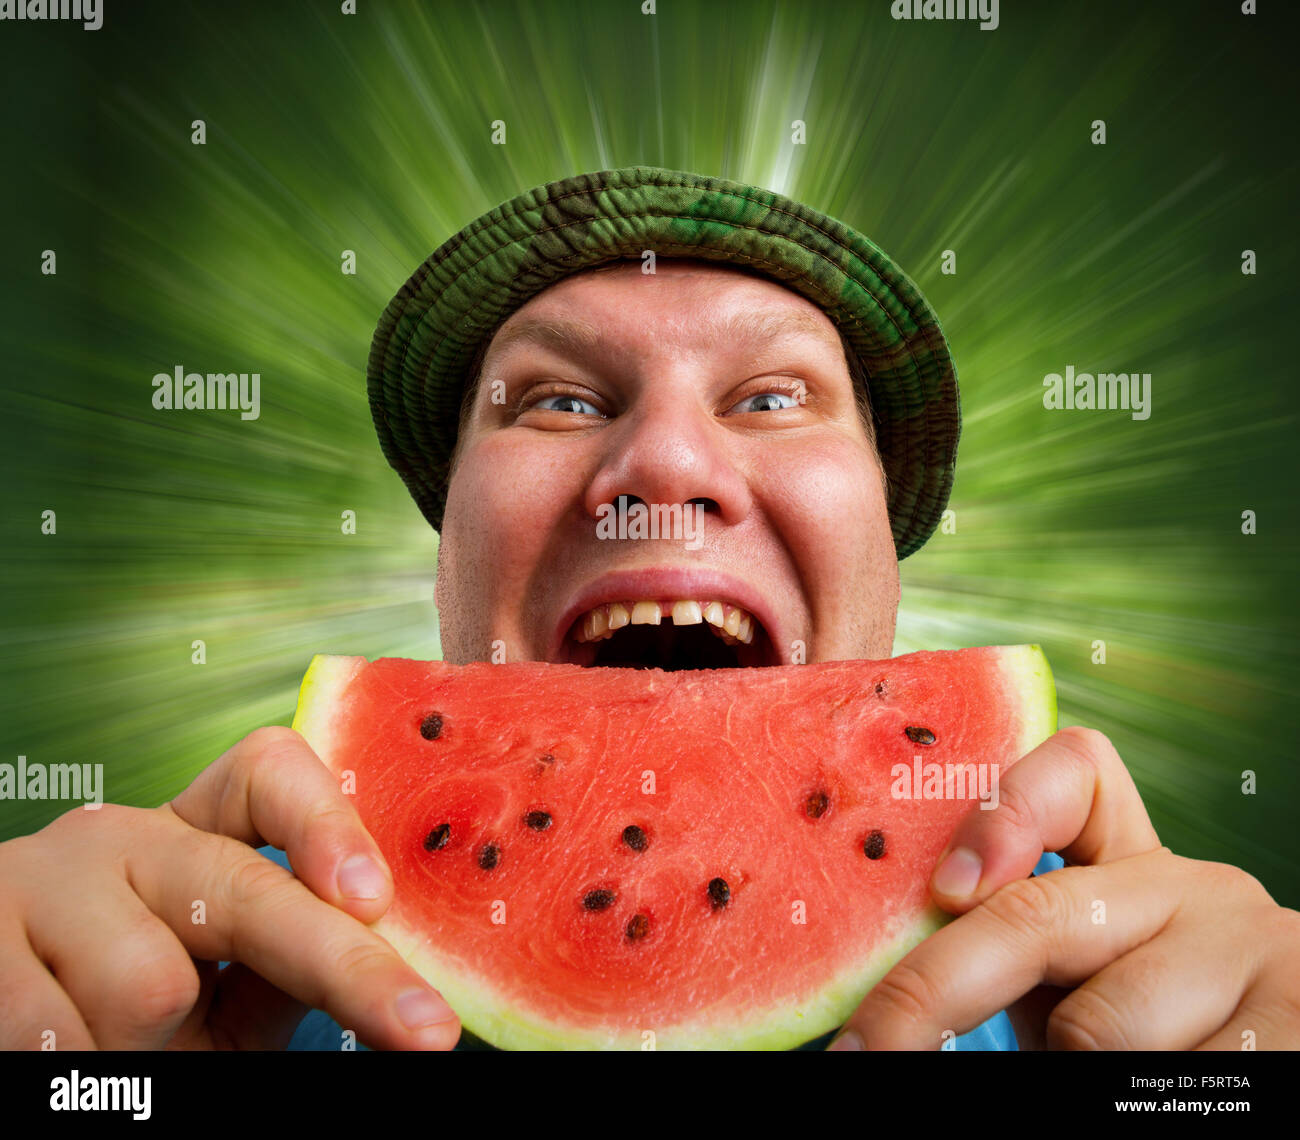 Bizarre man eating watermelon outdoors in summer - Stock Image